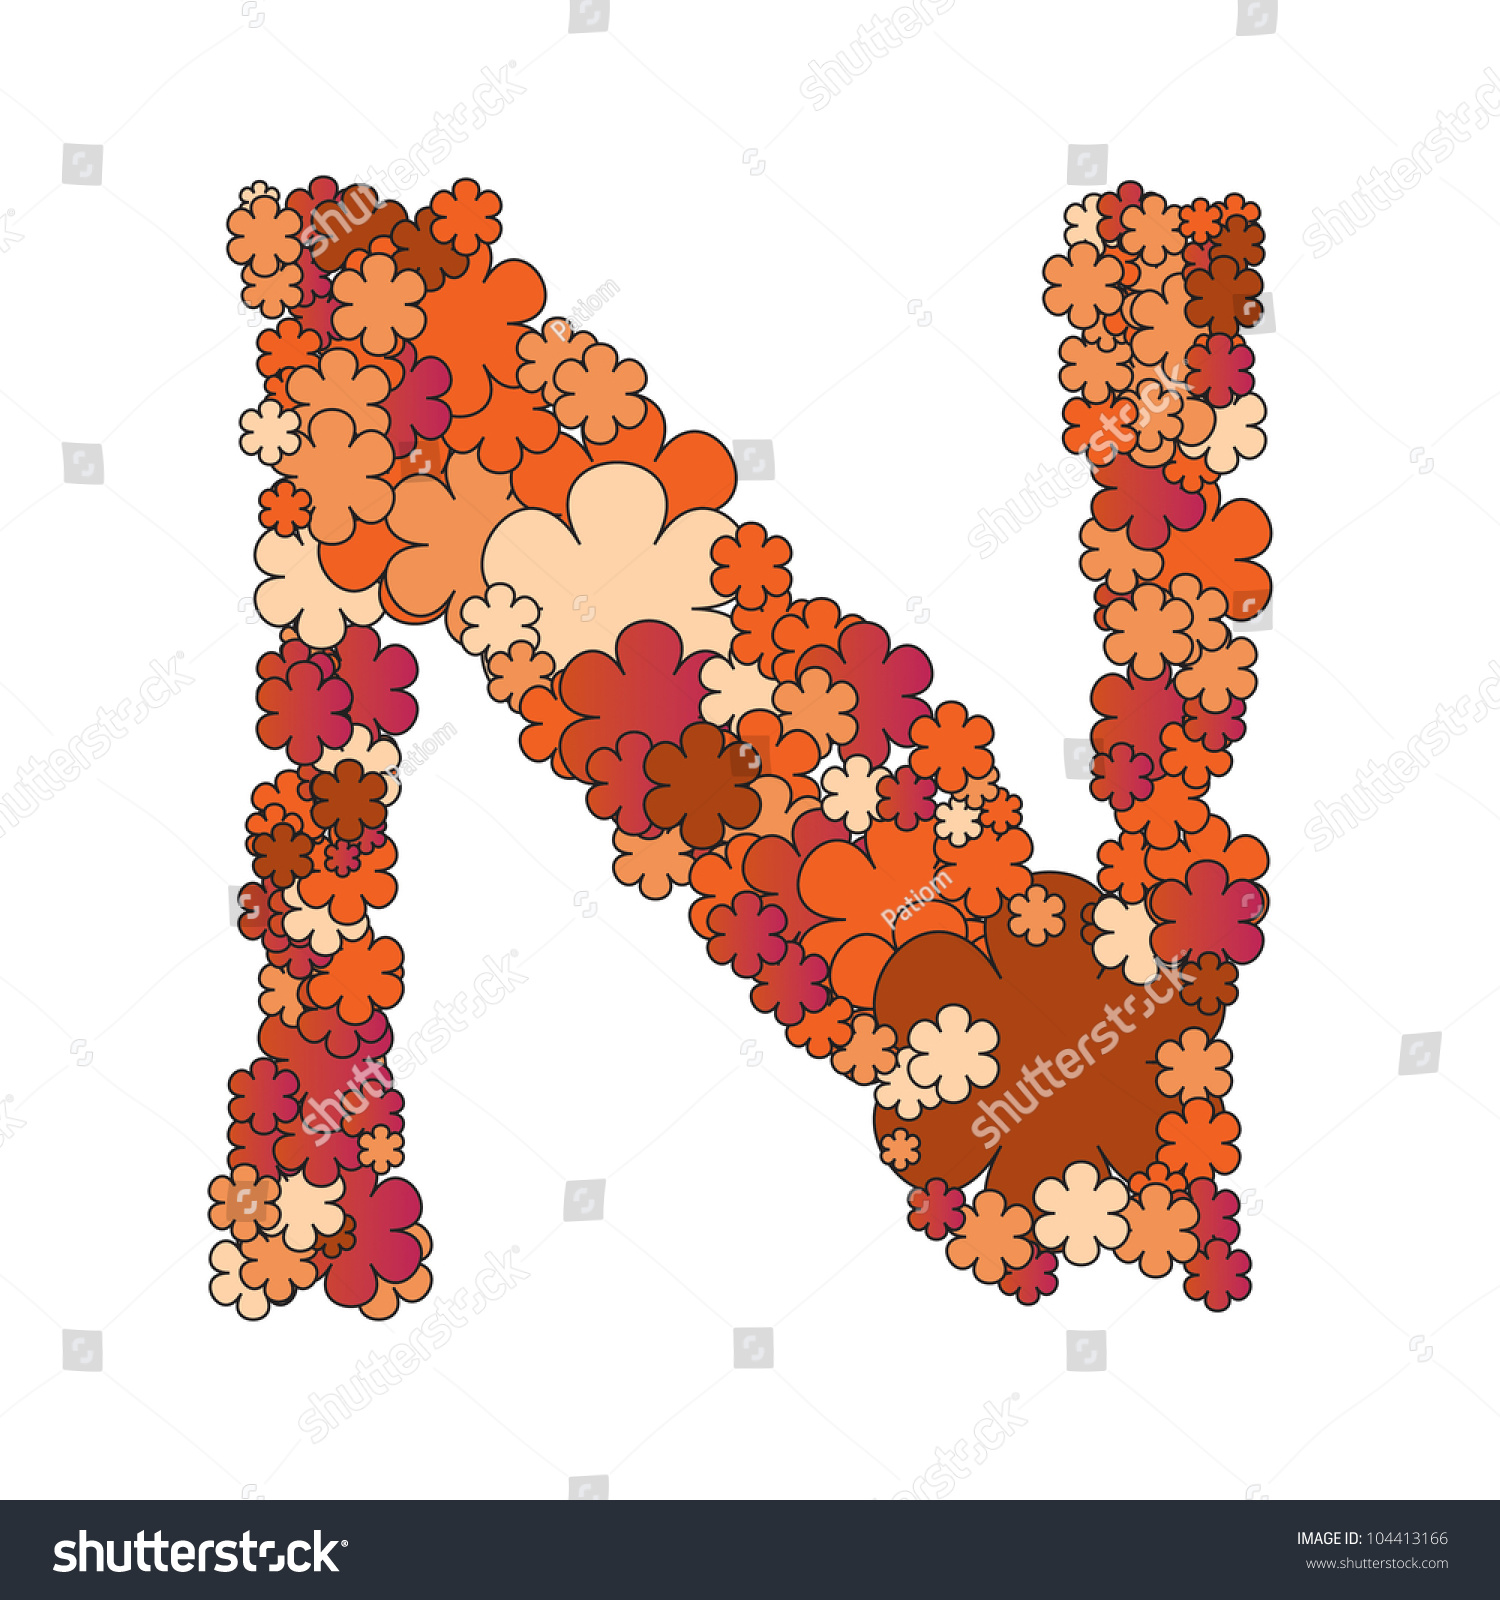 The Letter N Of A Beautiful Flower Alphabet Stock Photo ...